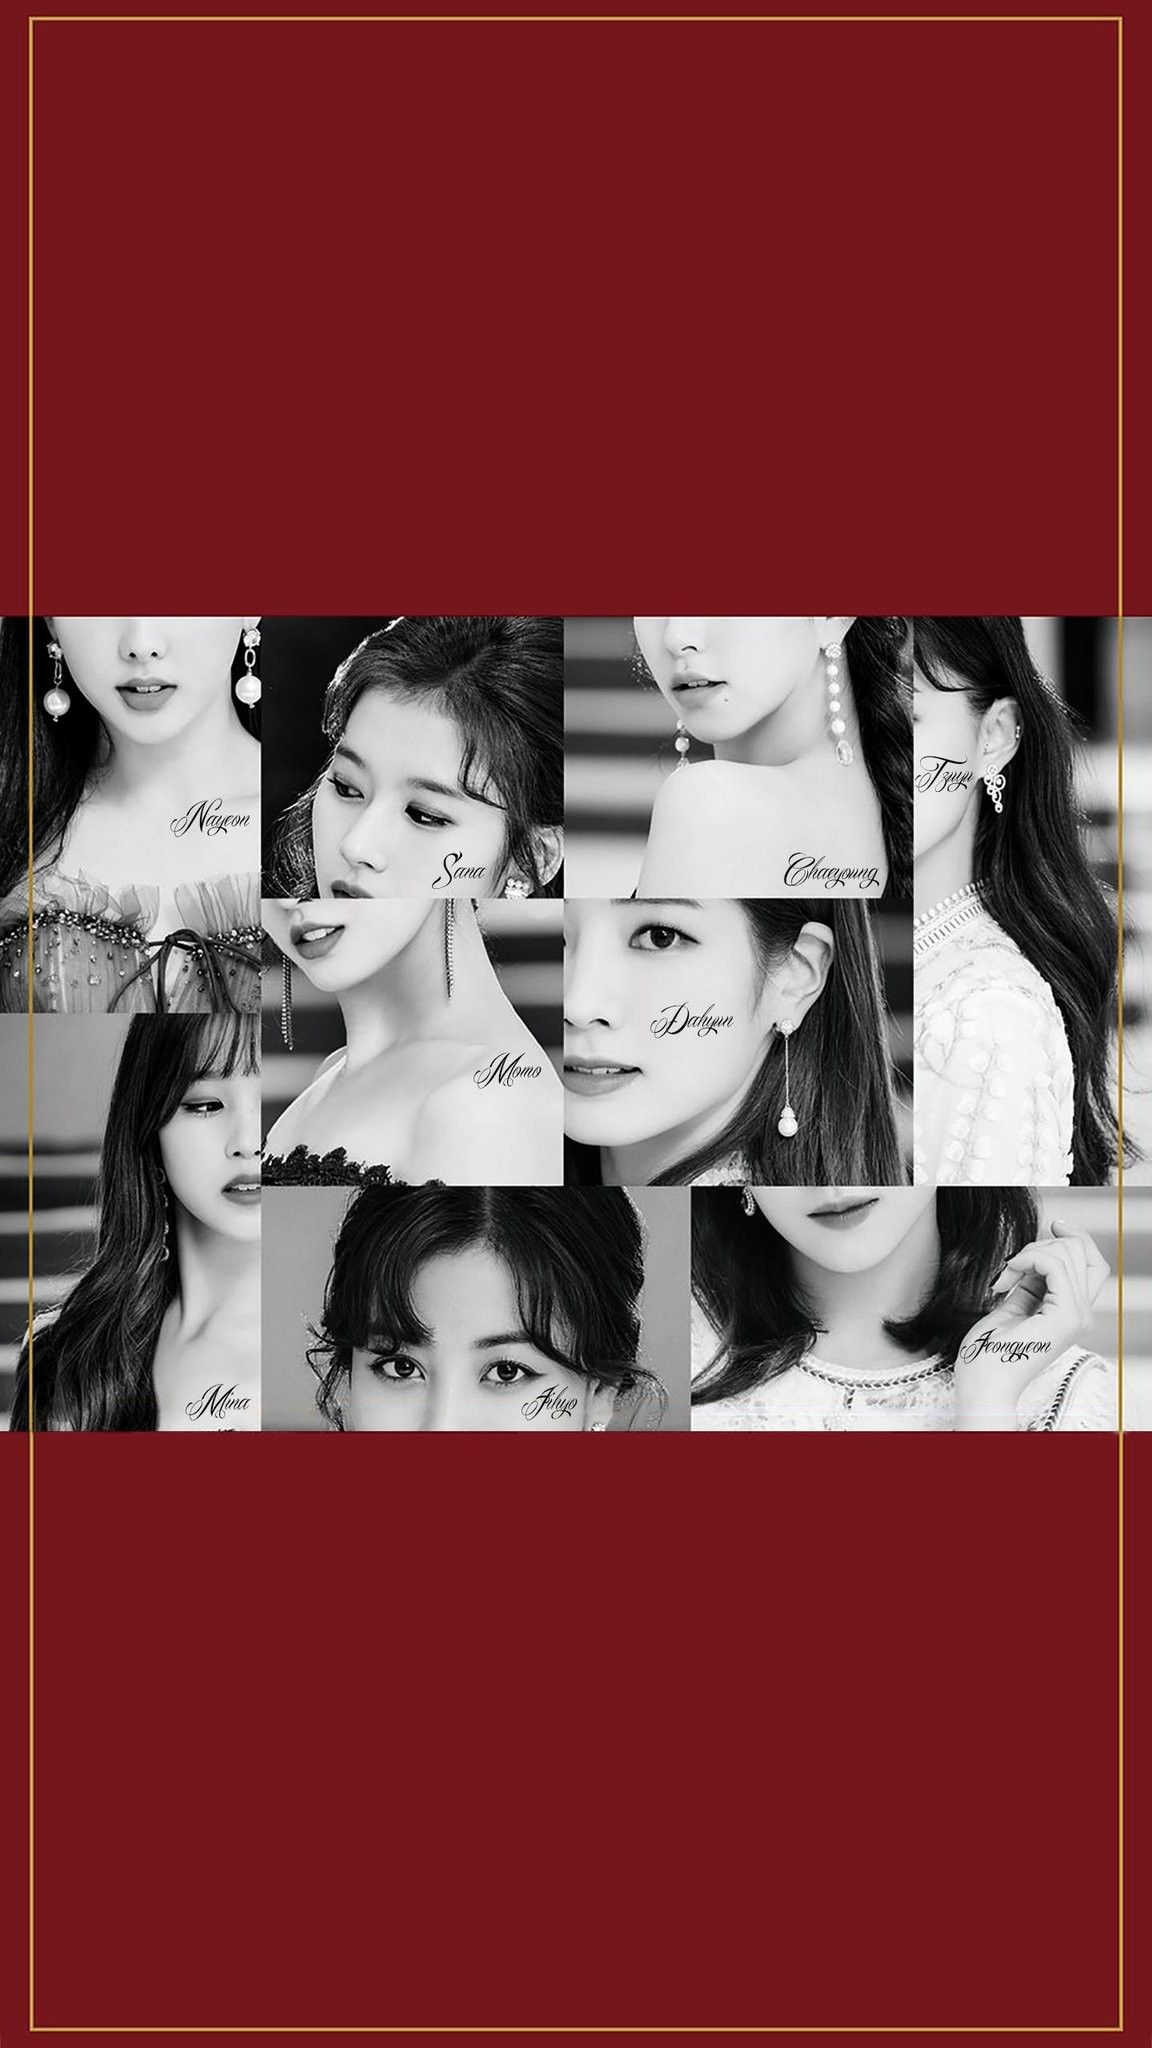 TWICE DOME TOUR 2019 Dreamday wallpaper TWICE 2 in 2019 1152x2048